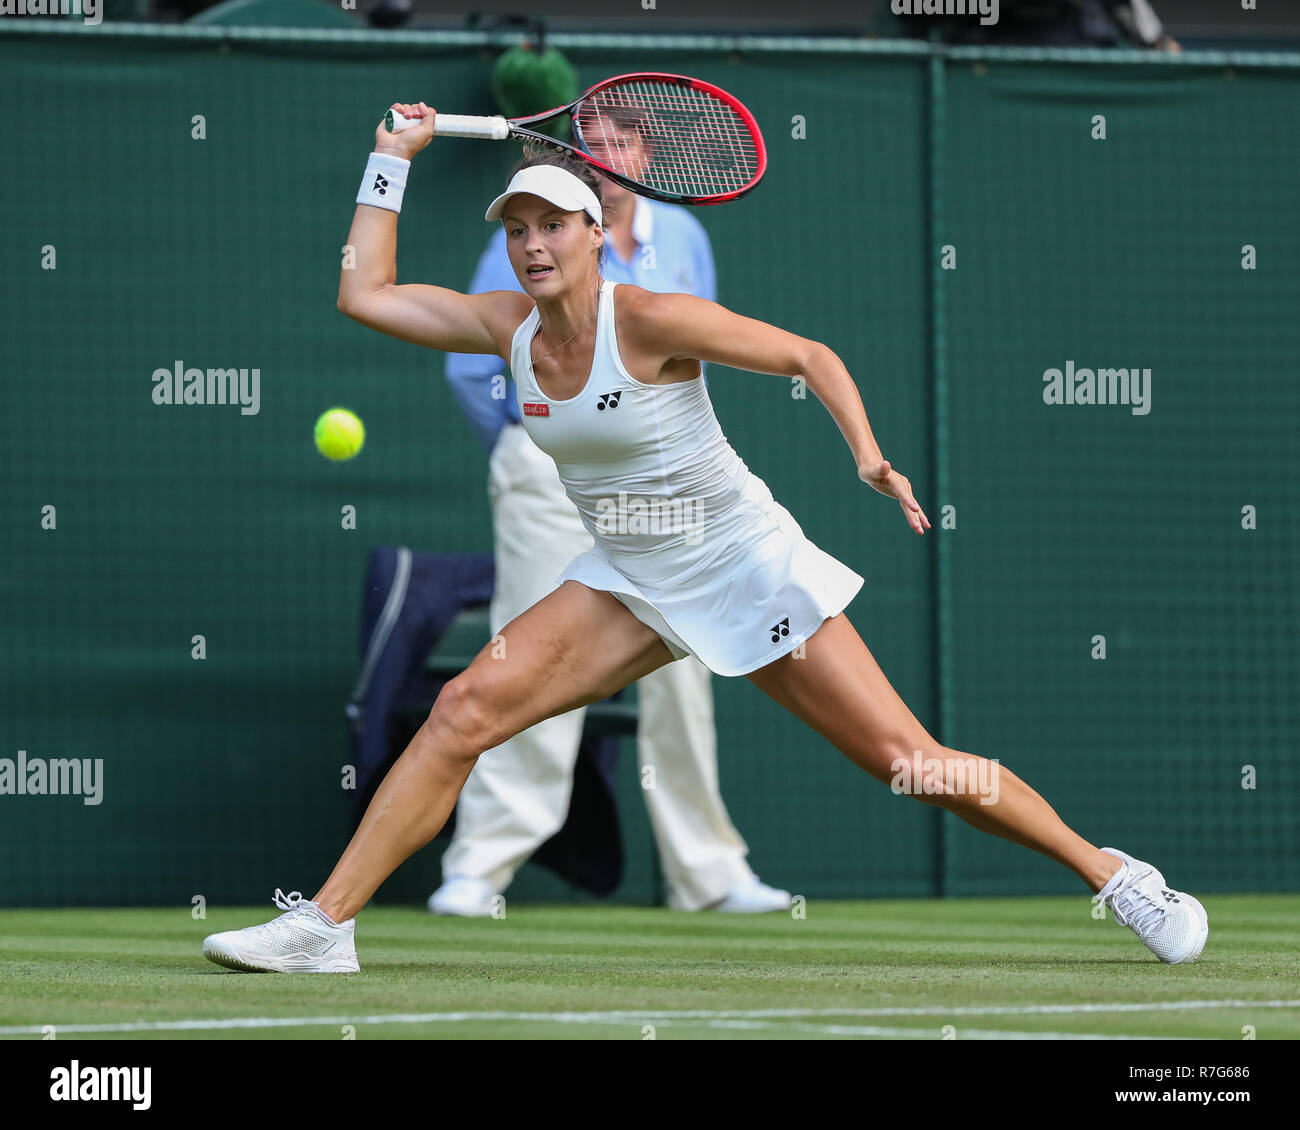 German player Tatjana Maria in action  at Wimbledon, London, Great Britain, United Kingdom. - Stock Image